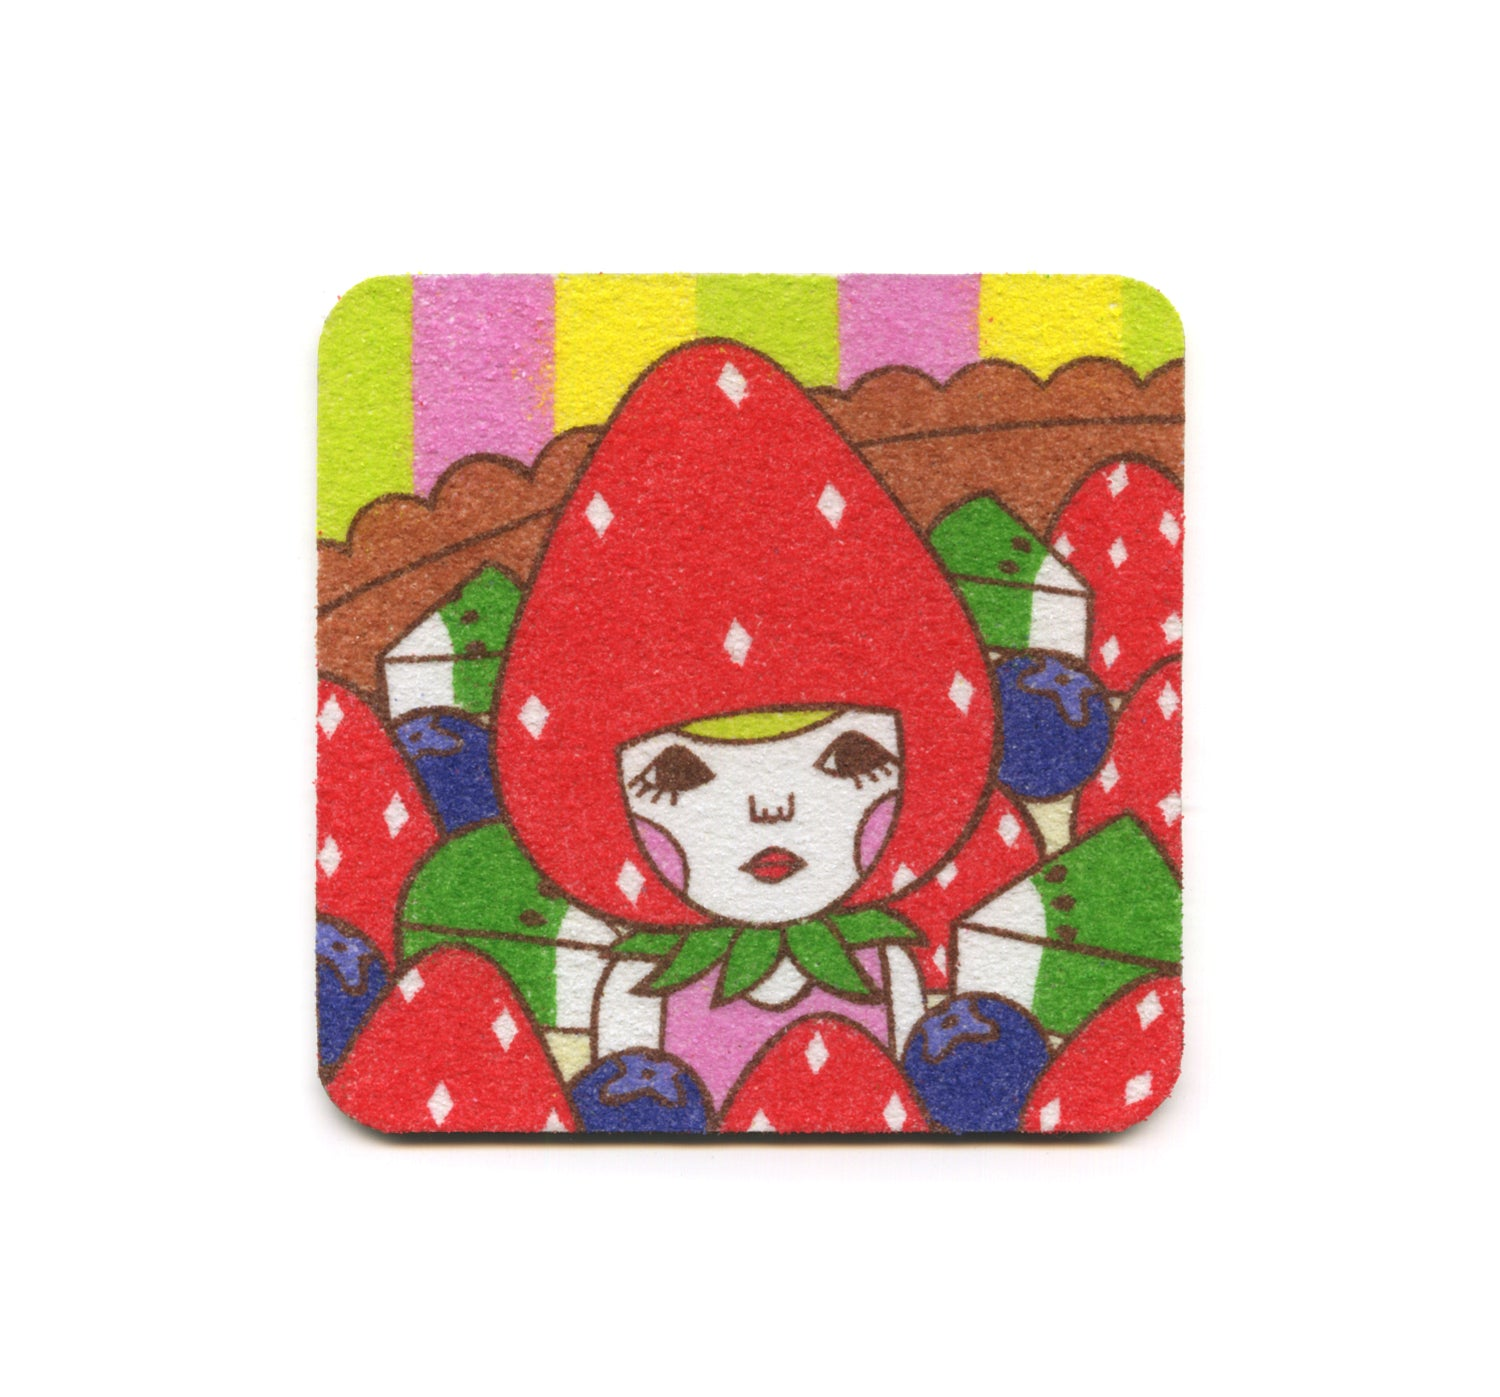 S2 Naoshi - In A Fruit Tart Coaster